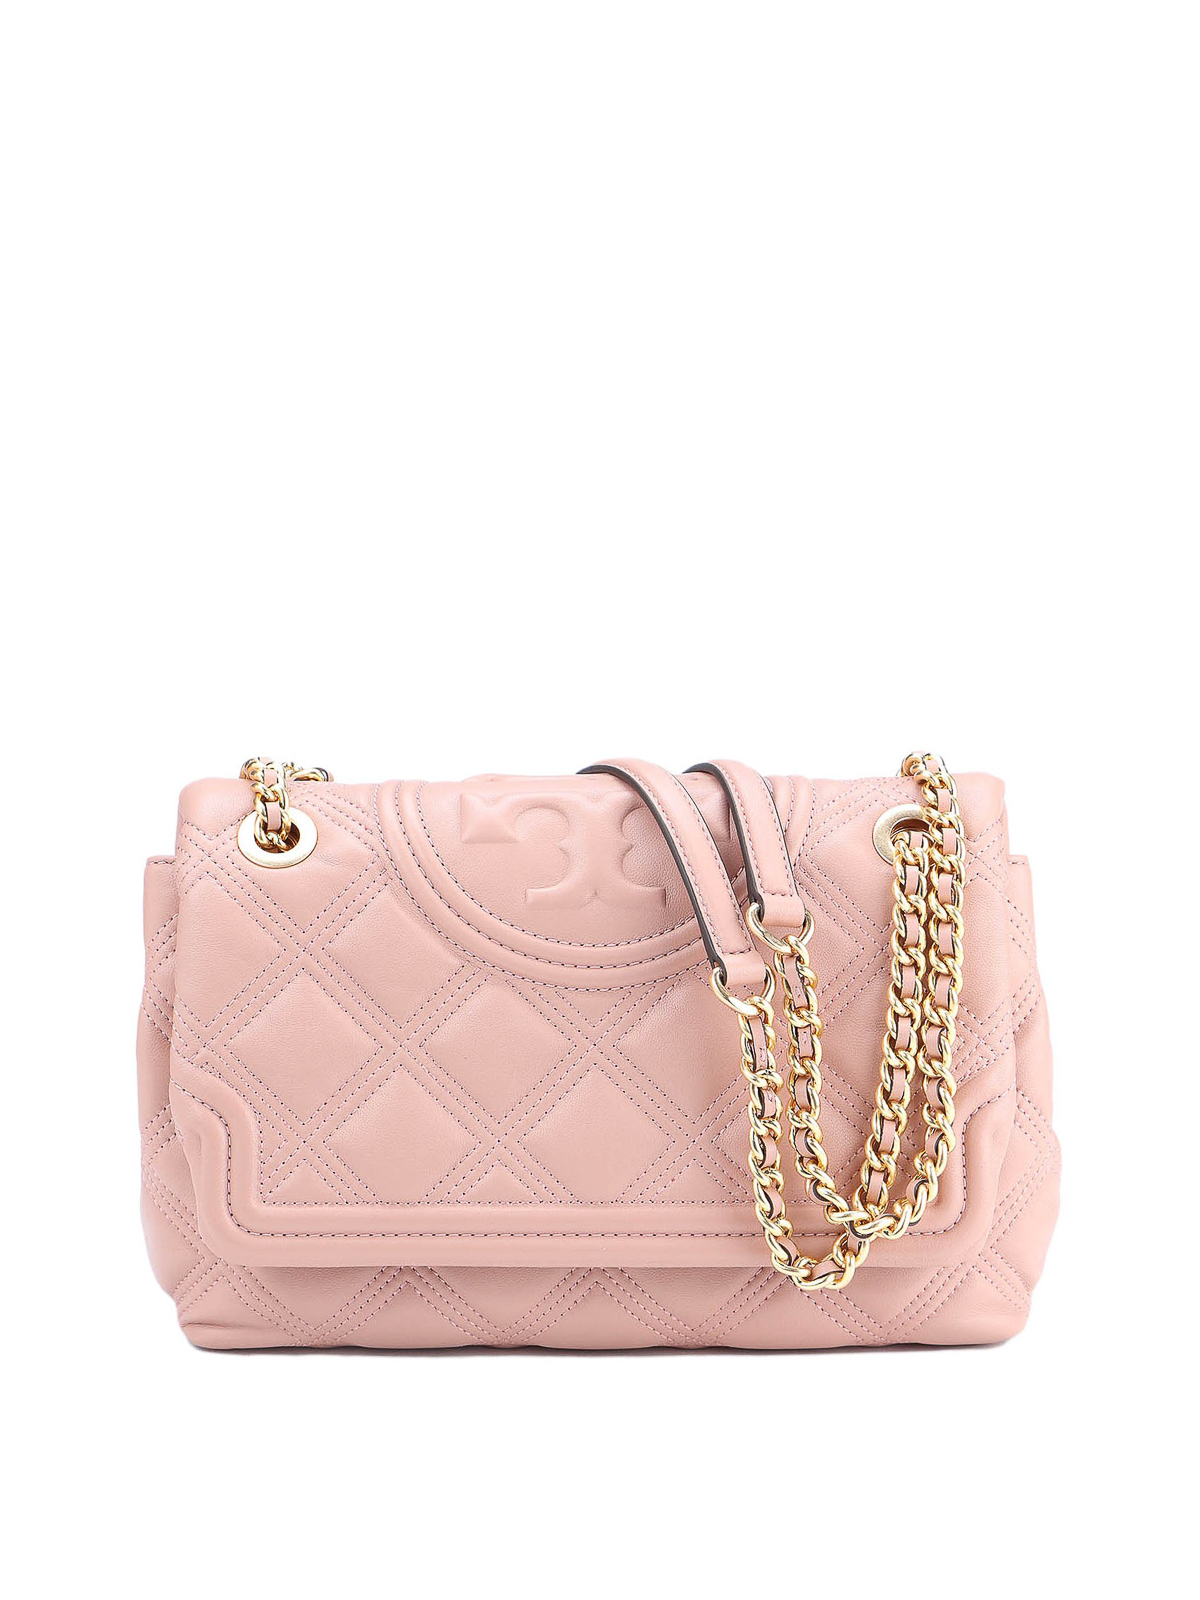 TORY BURCH CONVERTIBLE FLEMING SOFT LEATHER BAG